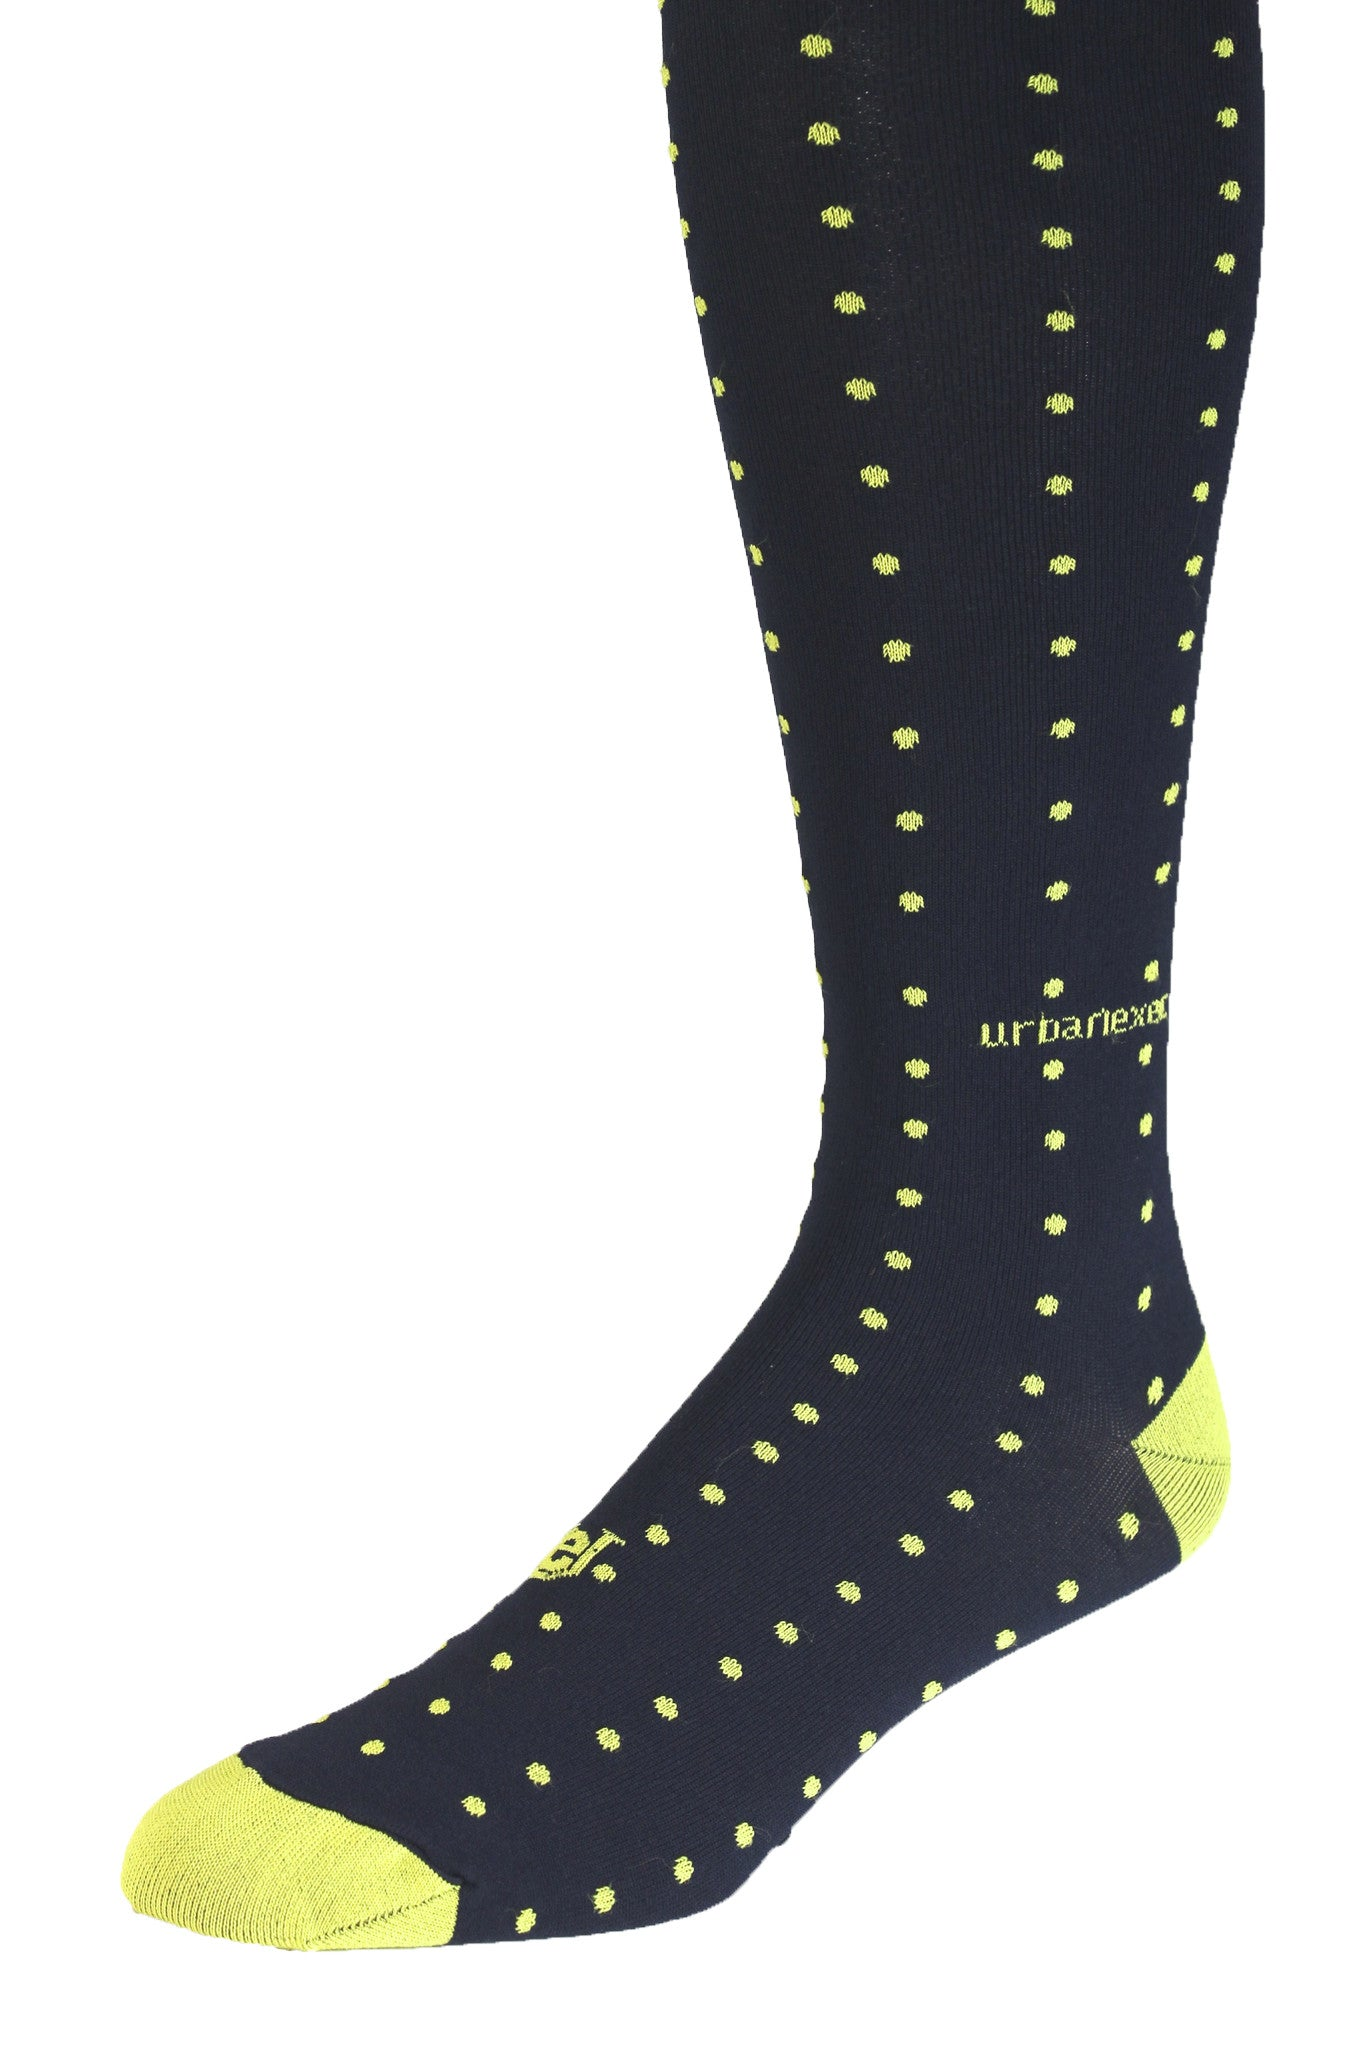 Men's Socks Performance ThinSkin GameDay Dark Blue with Yellow Pin Dots